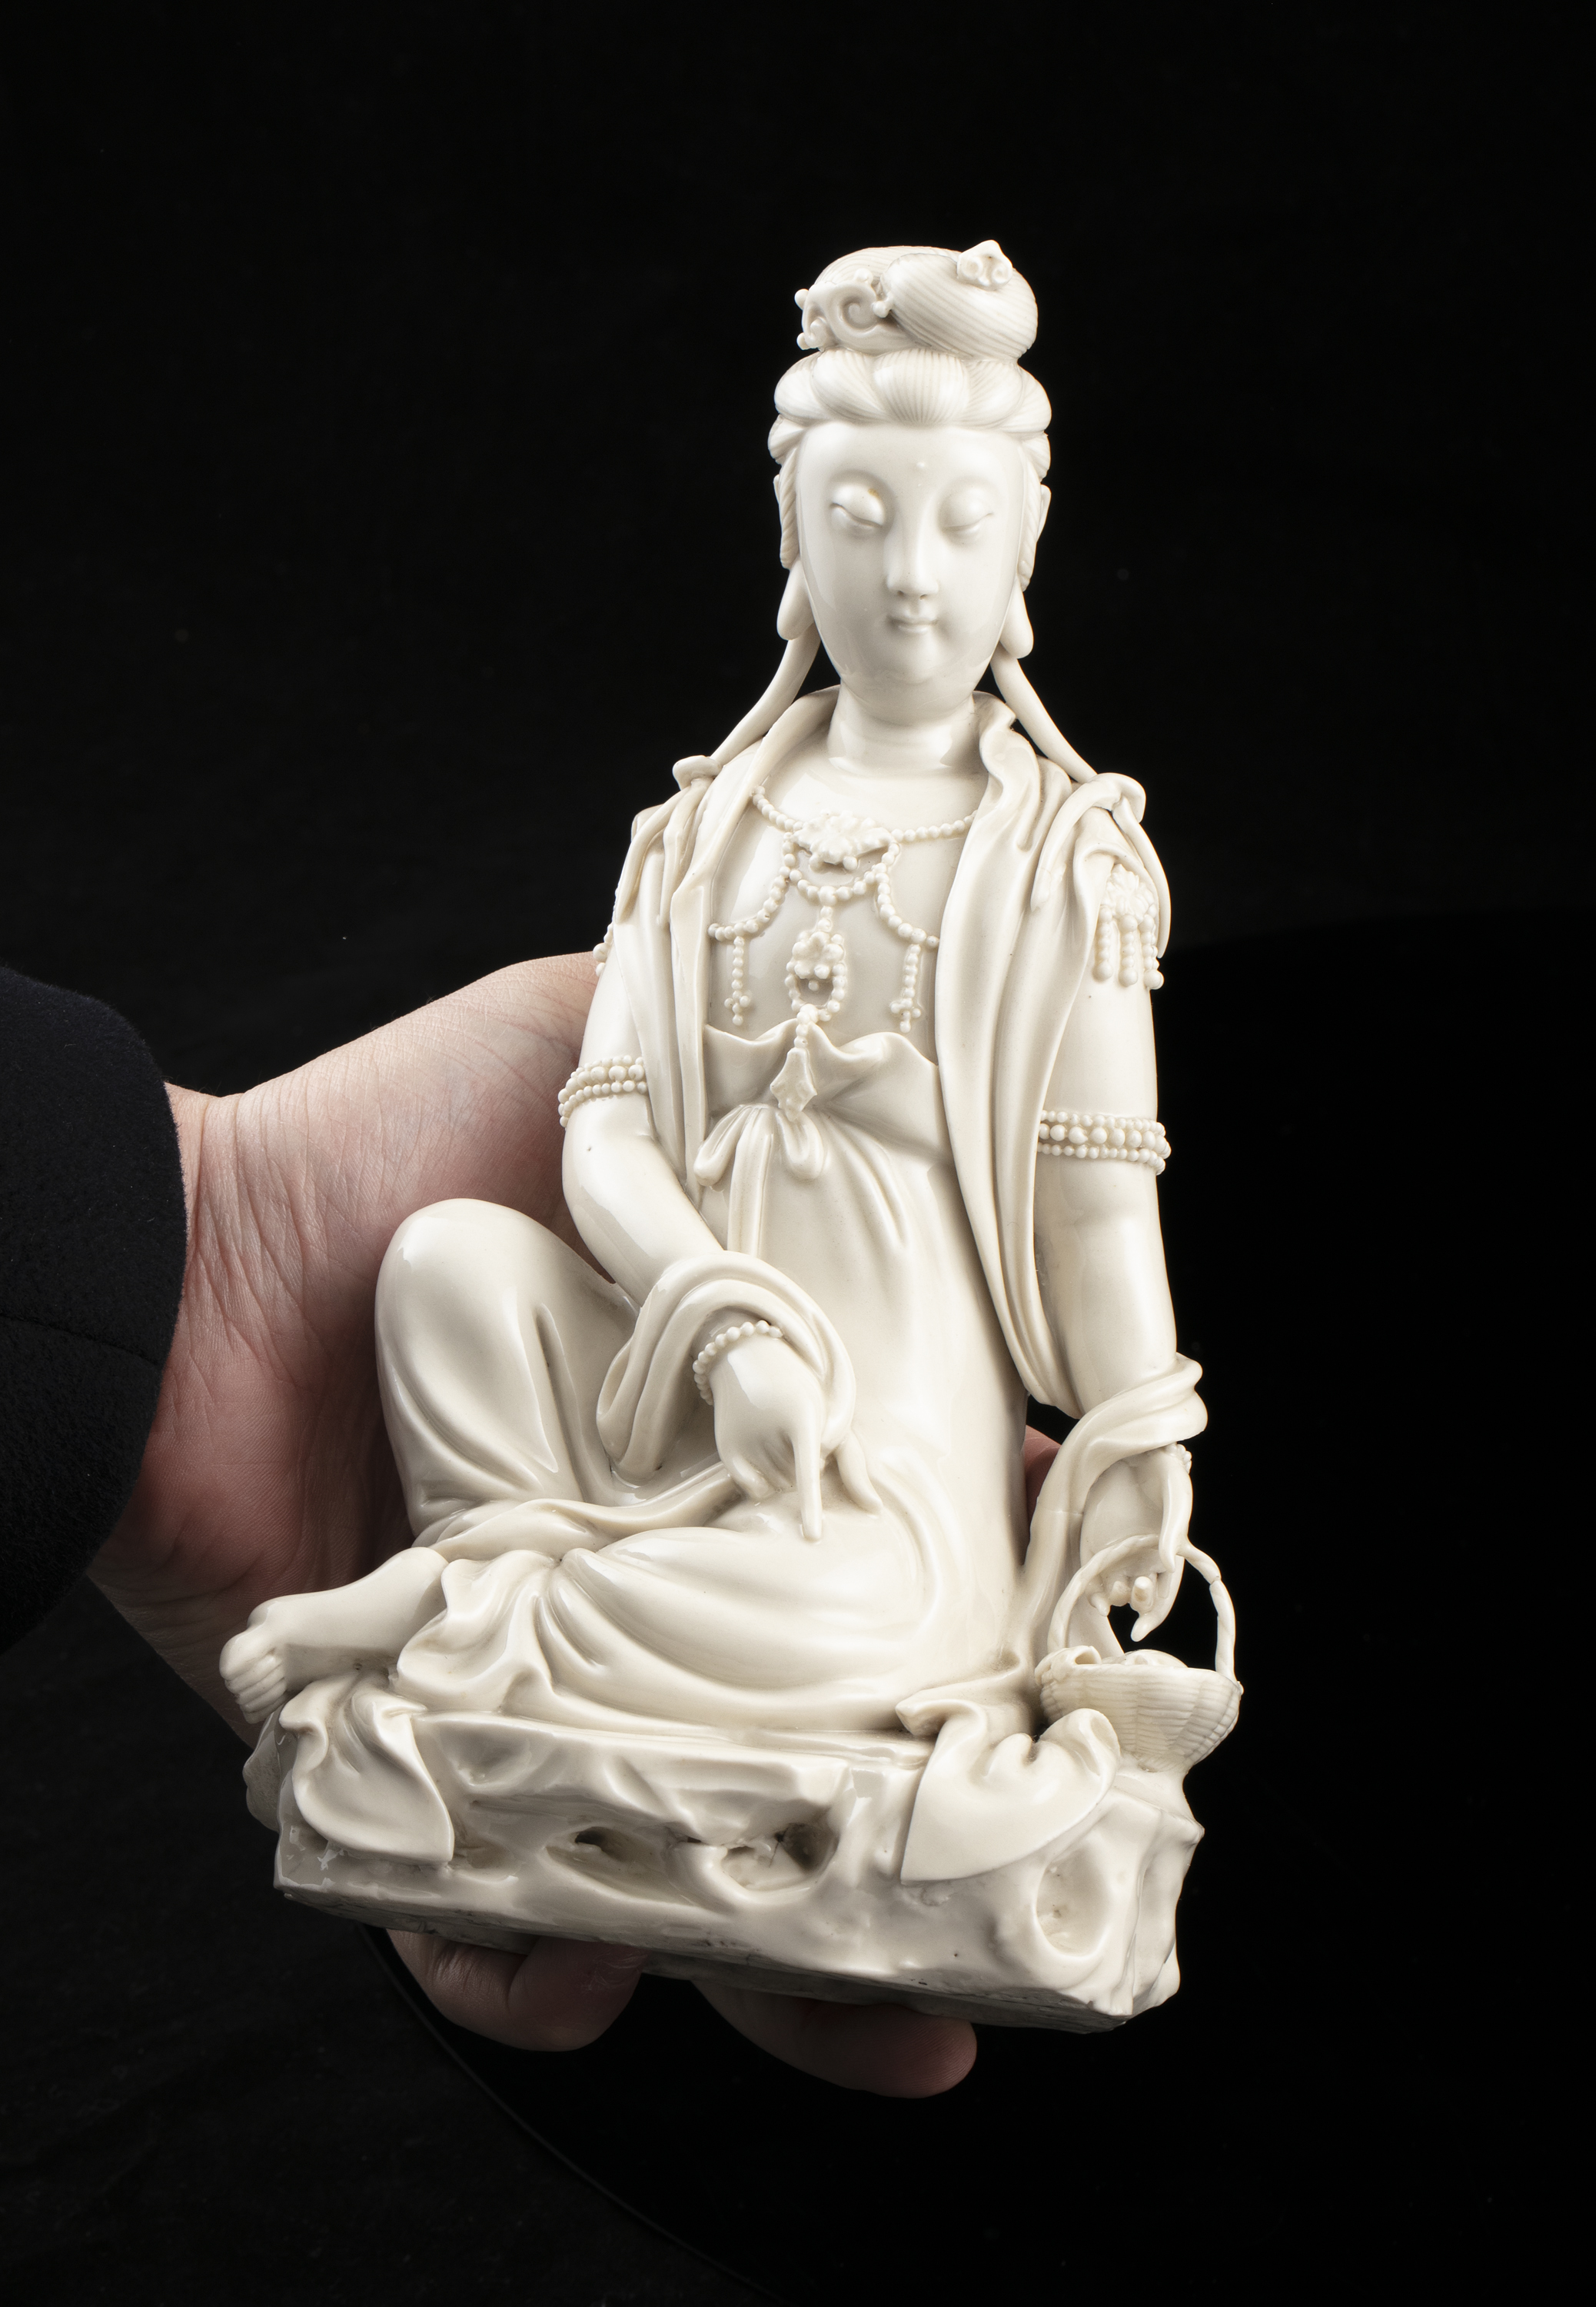 A LARGE DEHUA FIGURE OF A SEATED GUANYIN IMPRESSED WITH A HE CHAOZONG 何朝宗 CALABASH SHAPED SEAL - Image 12 of 48